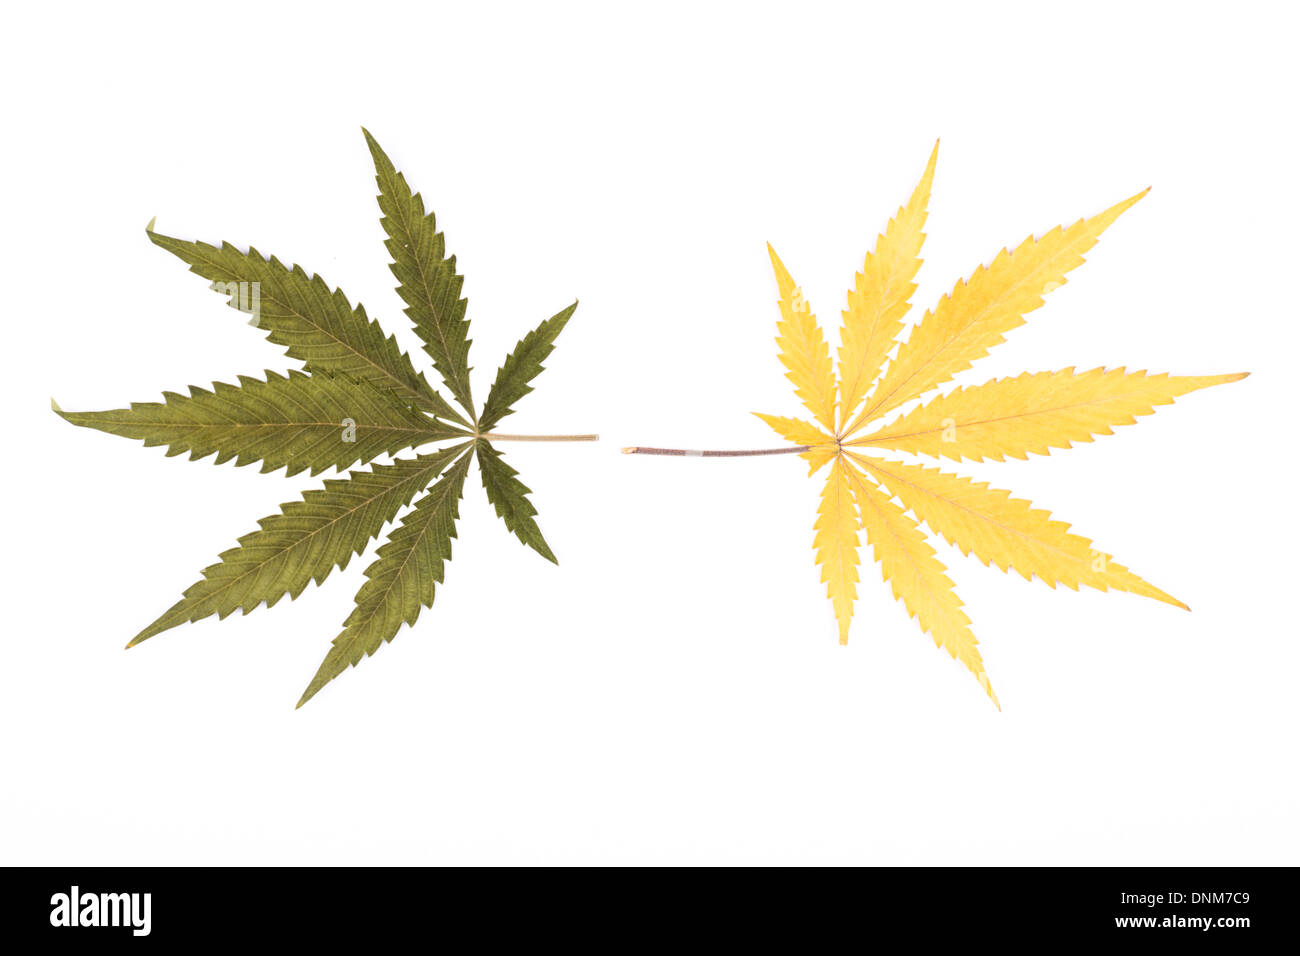 Two different coloured cannabis leaves isolated on white background. - Stock Image